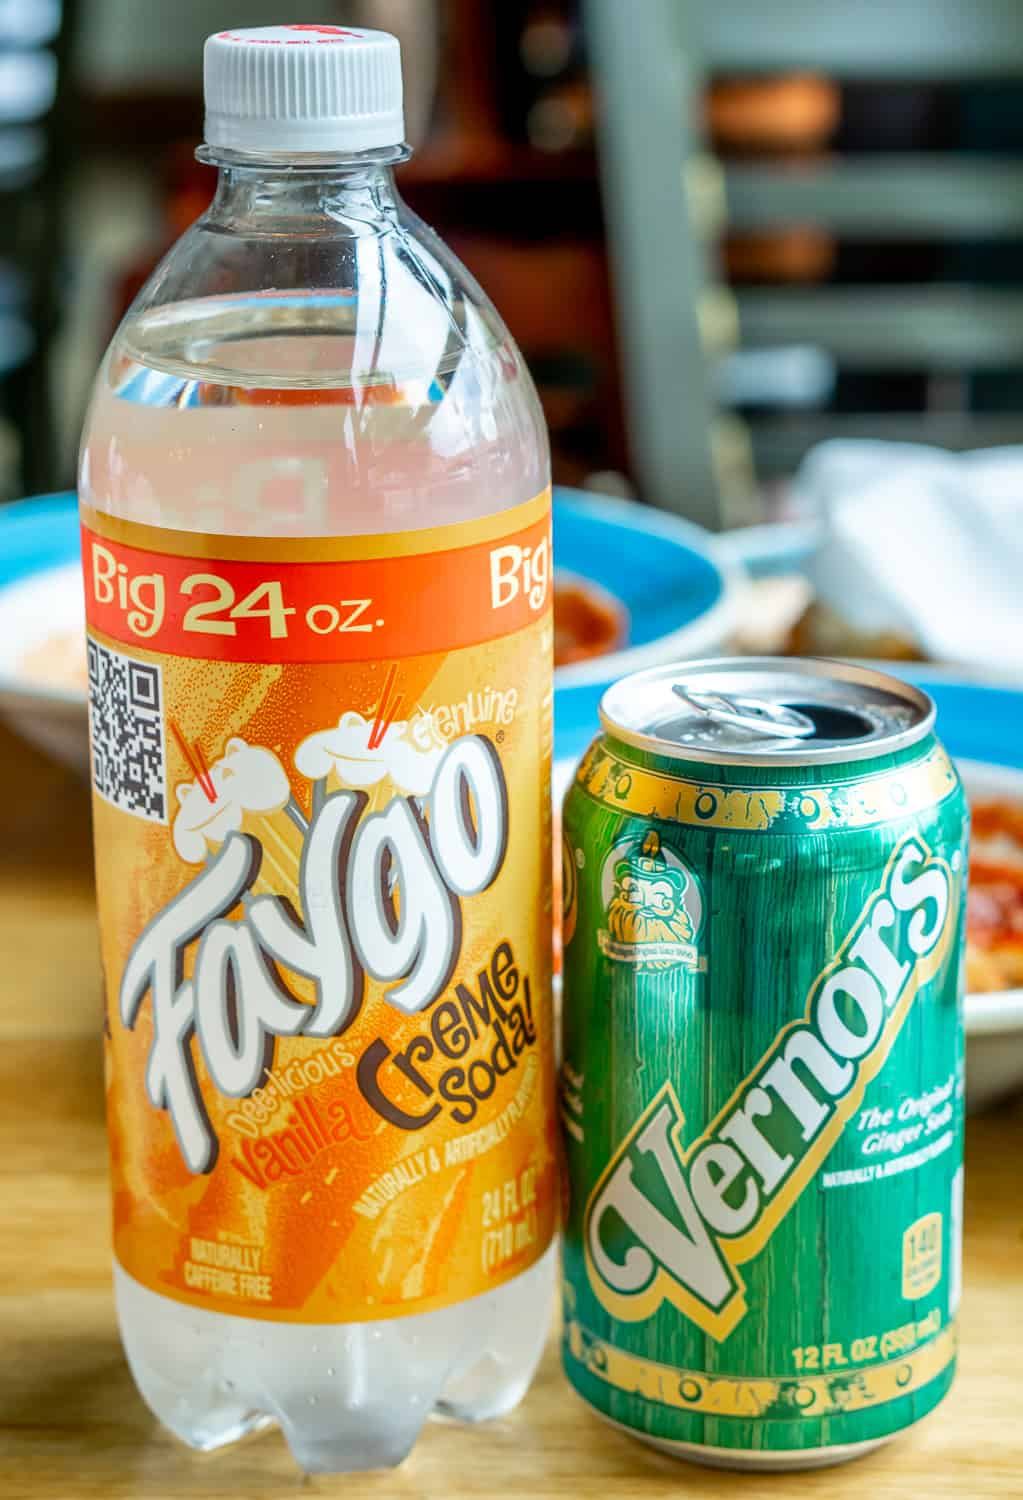 Faygo and Vernor's sodas